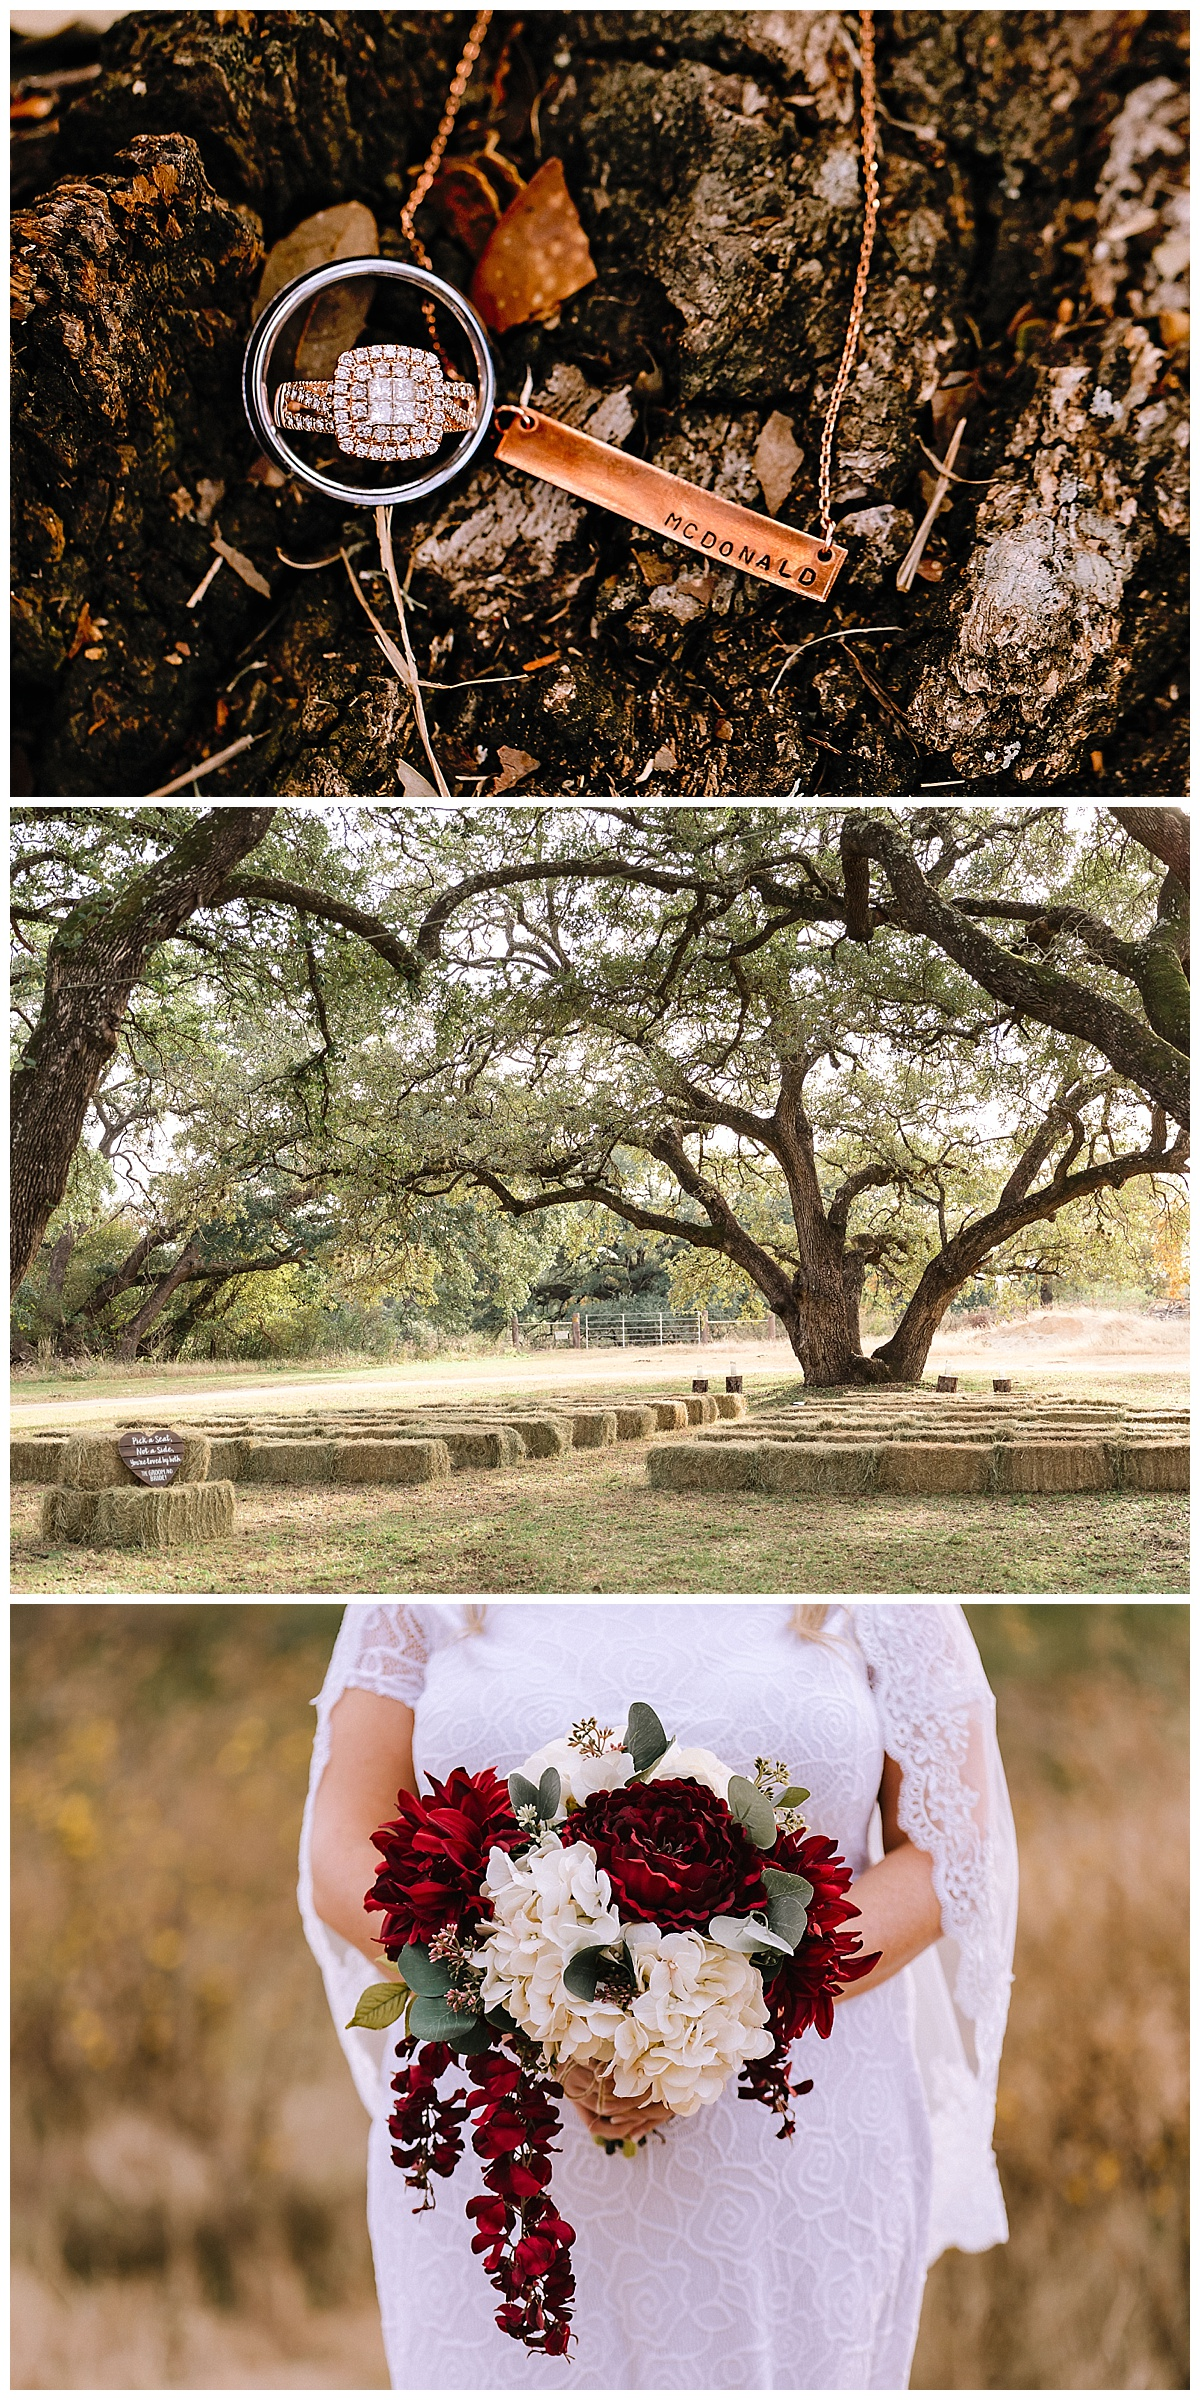 Wedding-Photographer-LaVernia-Texas-Ceremony-Under-the-Trees-Bride-Groom-Fall-McDonald-Carly-Barton-Photography_0002.jpg